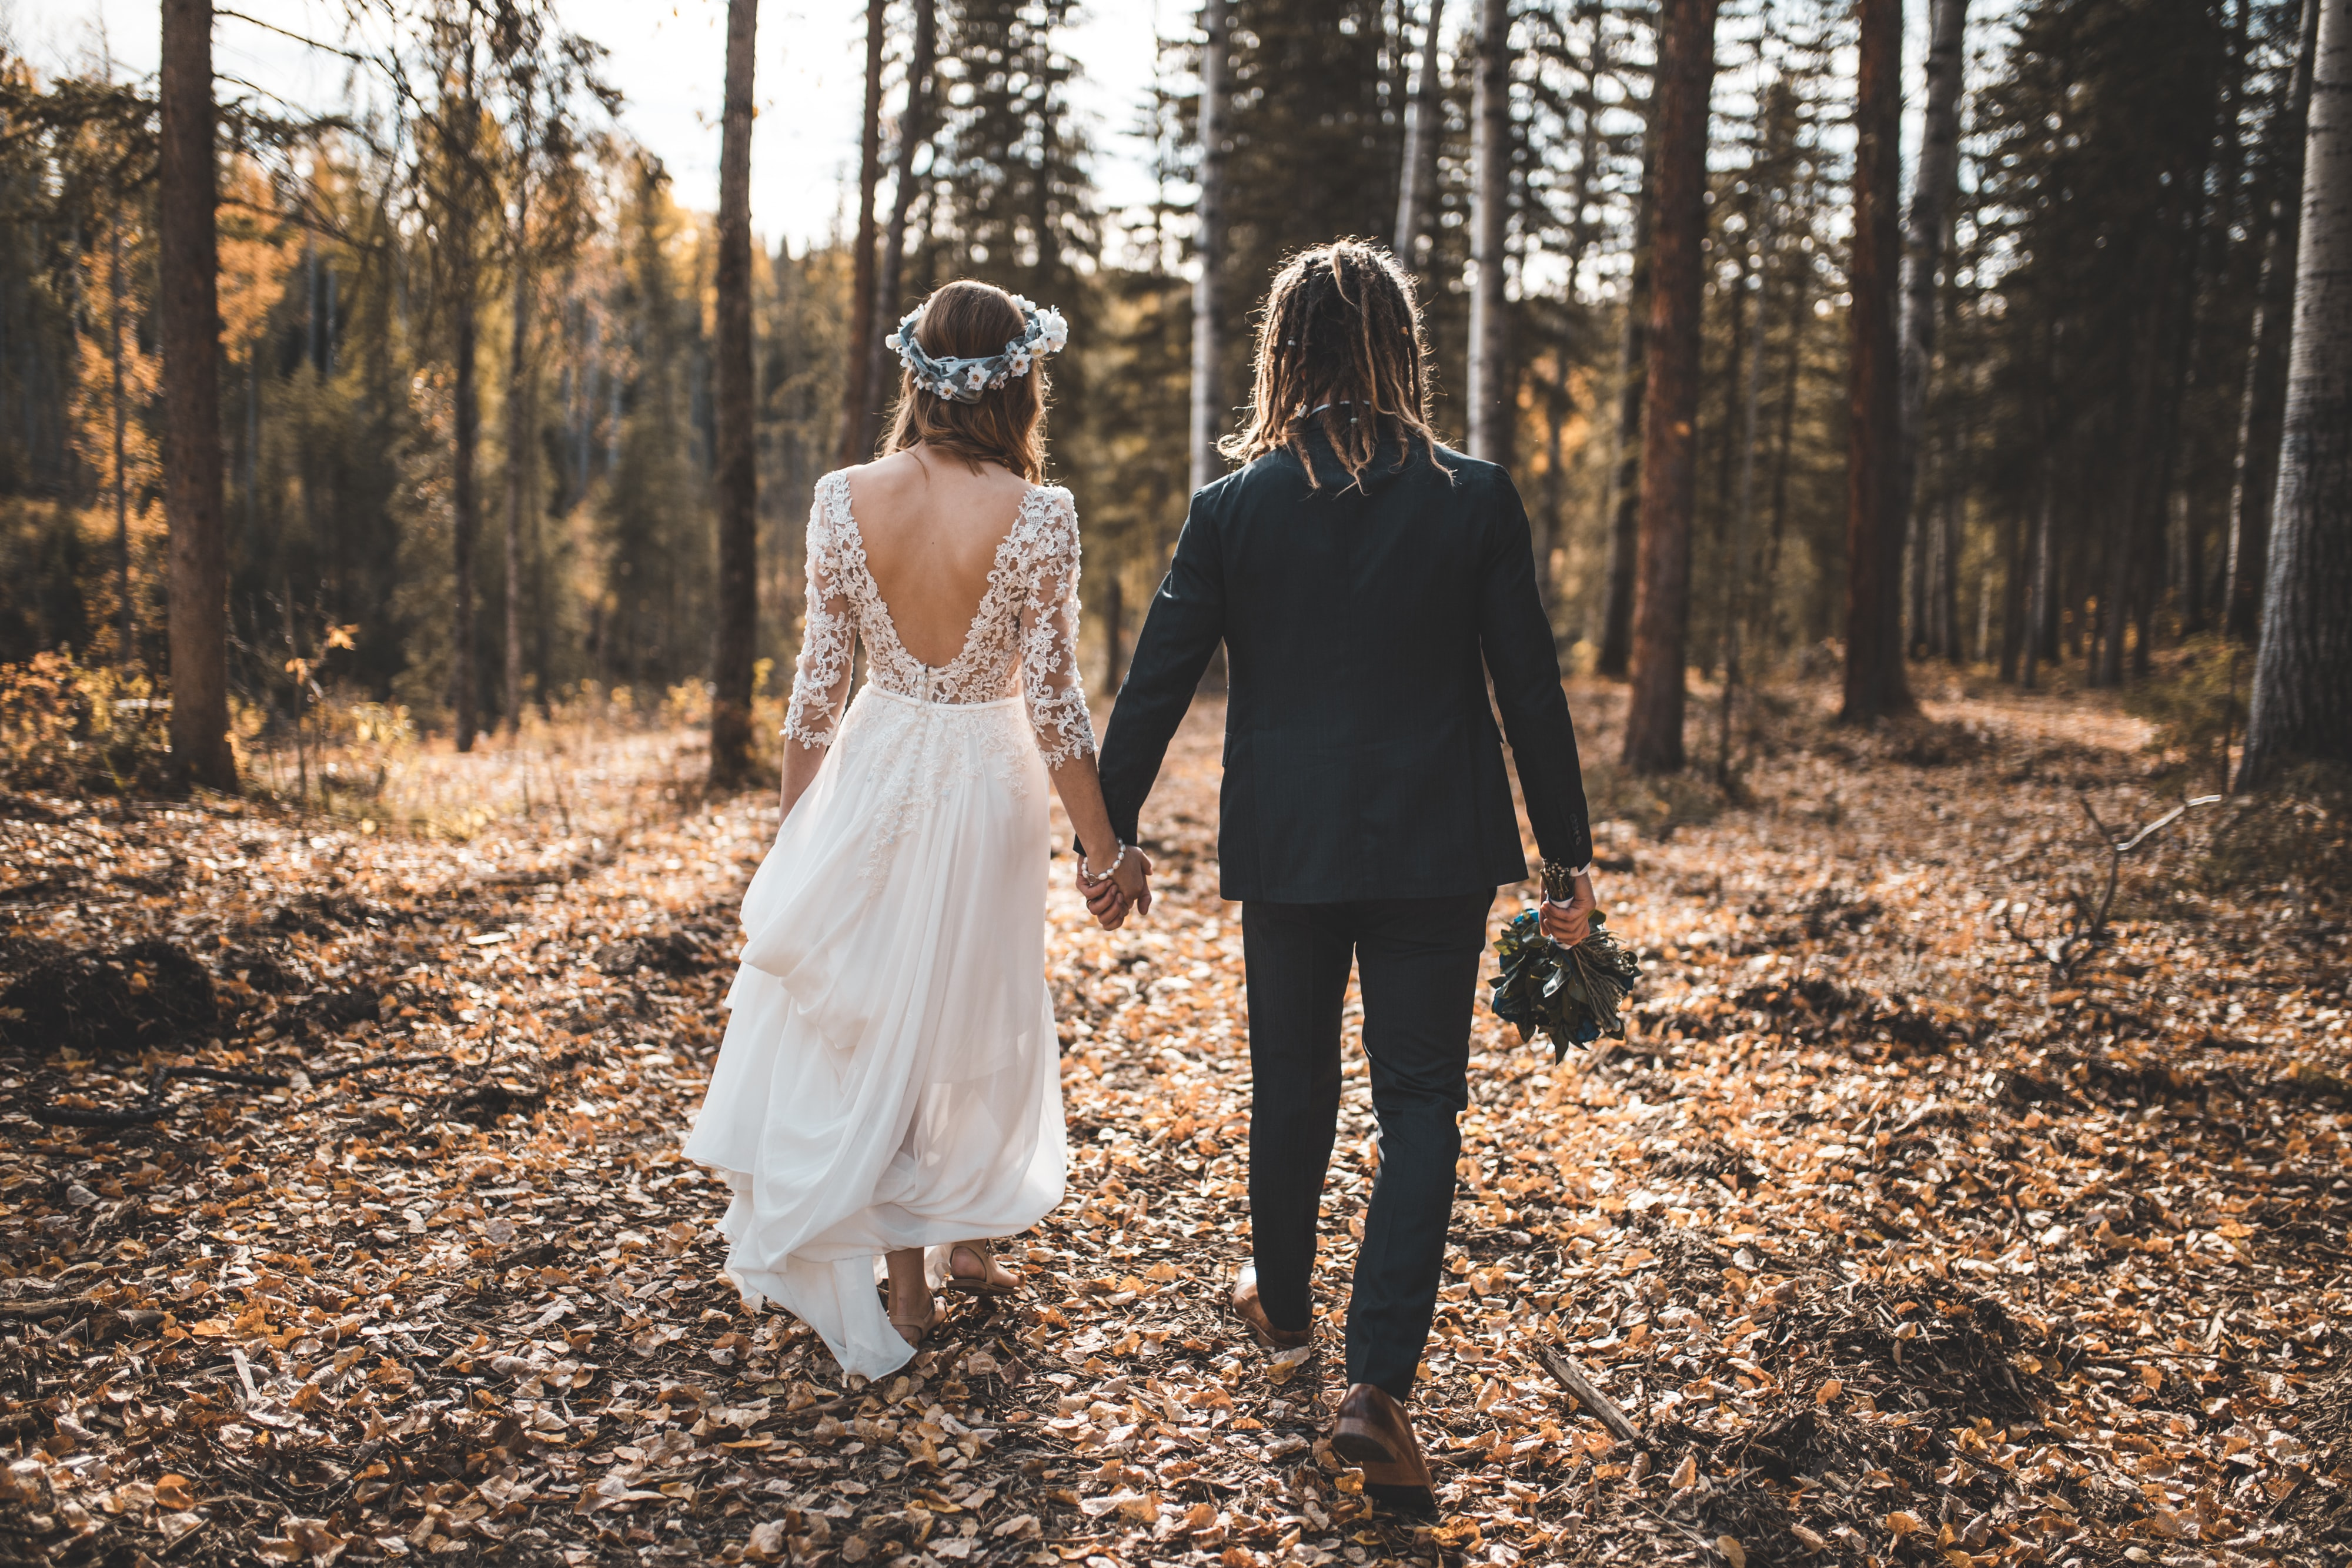 bride and groom walking on leaves covered ground in woods during day